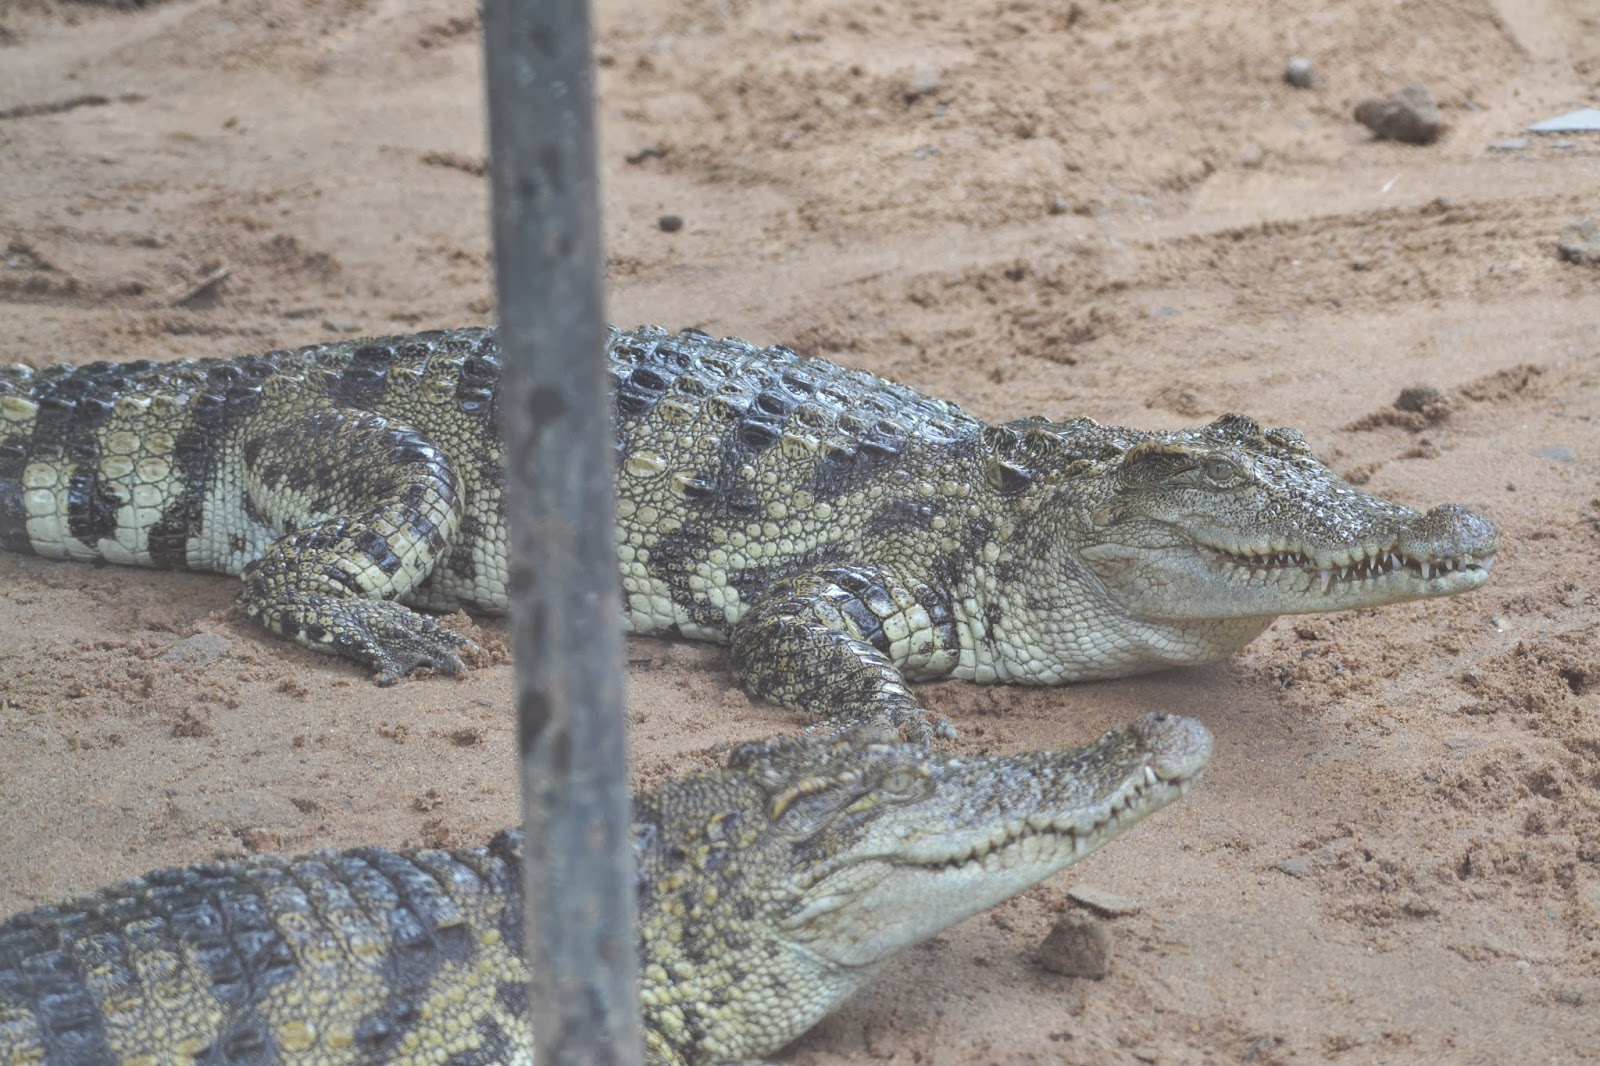 crocodiles at nandankanan zoological park